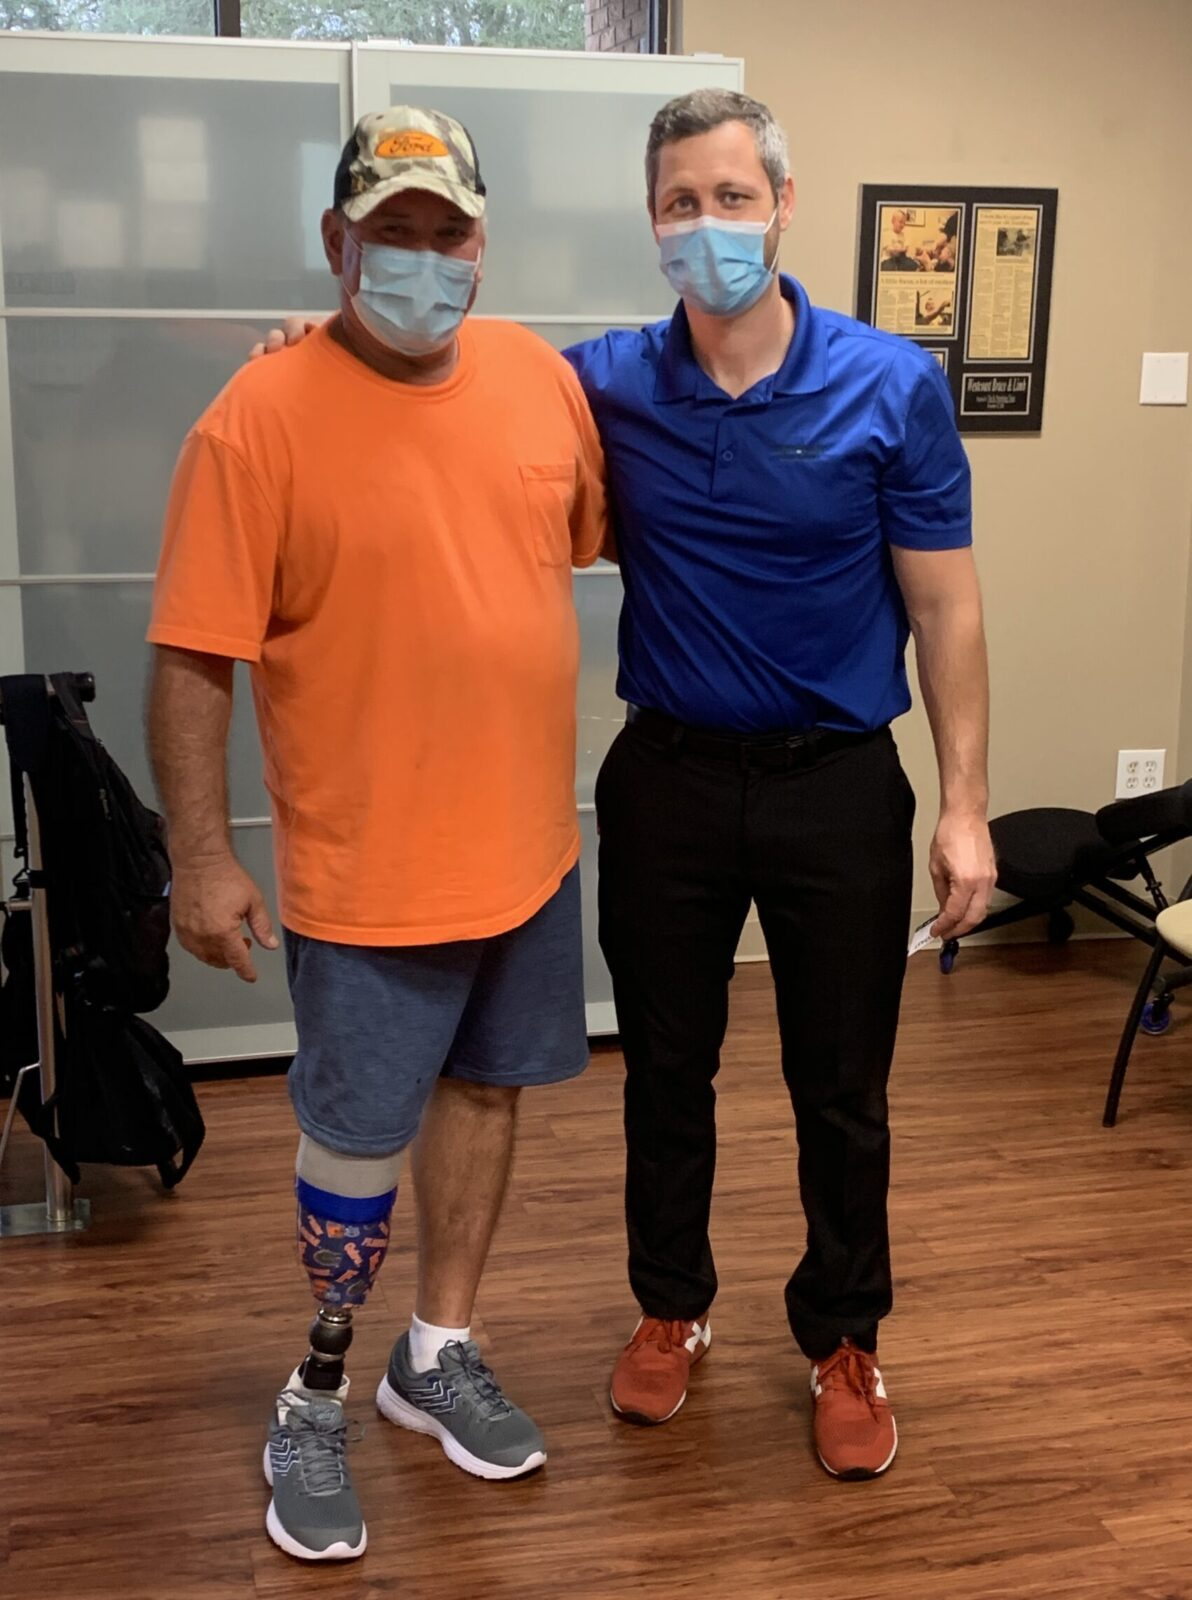 Below knee amputee with prosthetist prosthetic practitioner